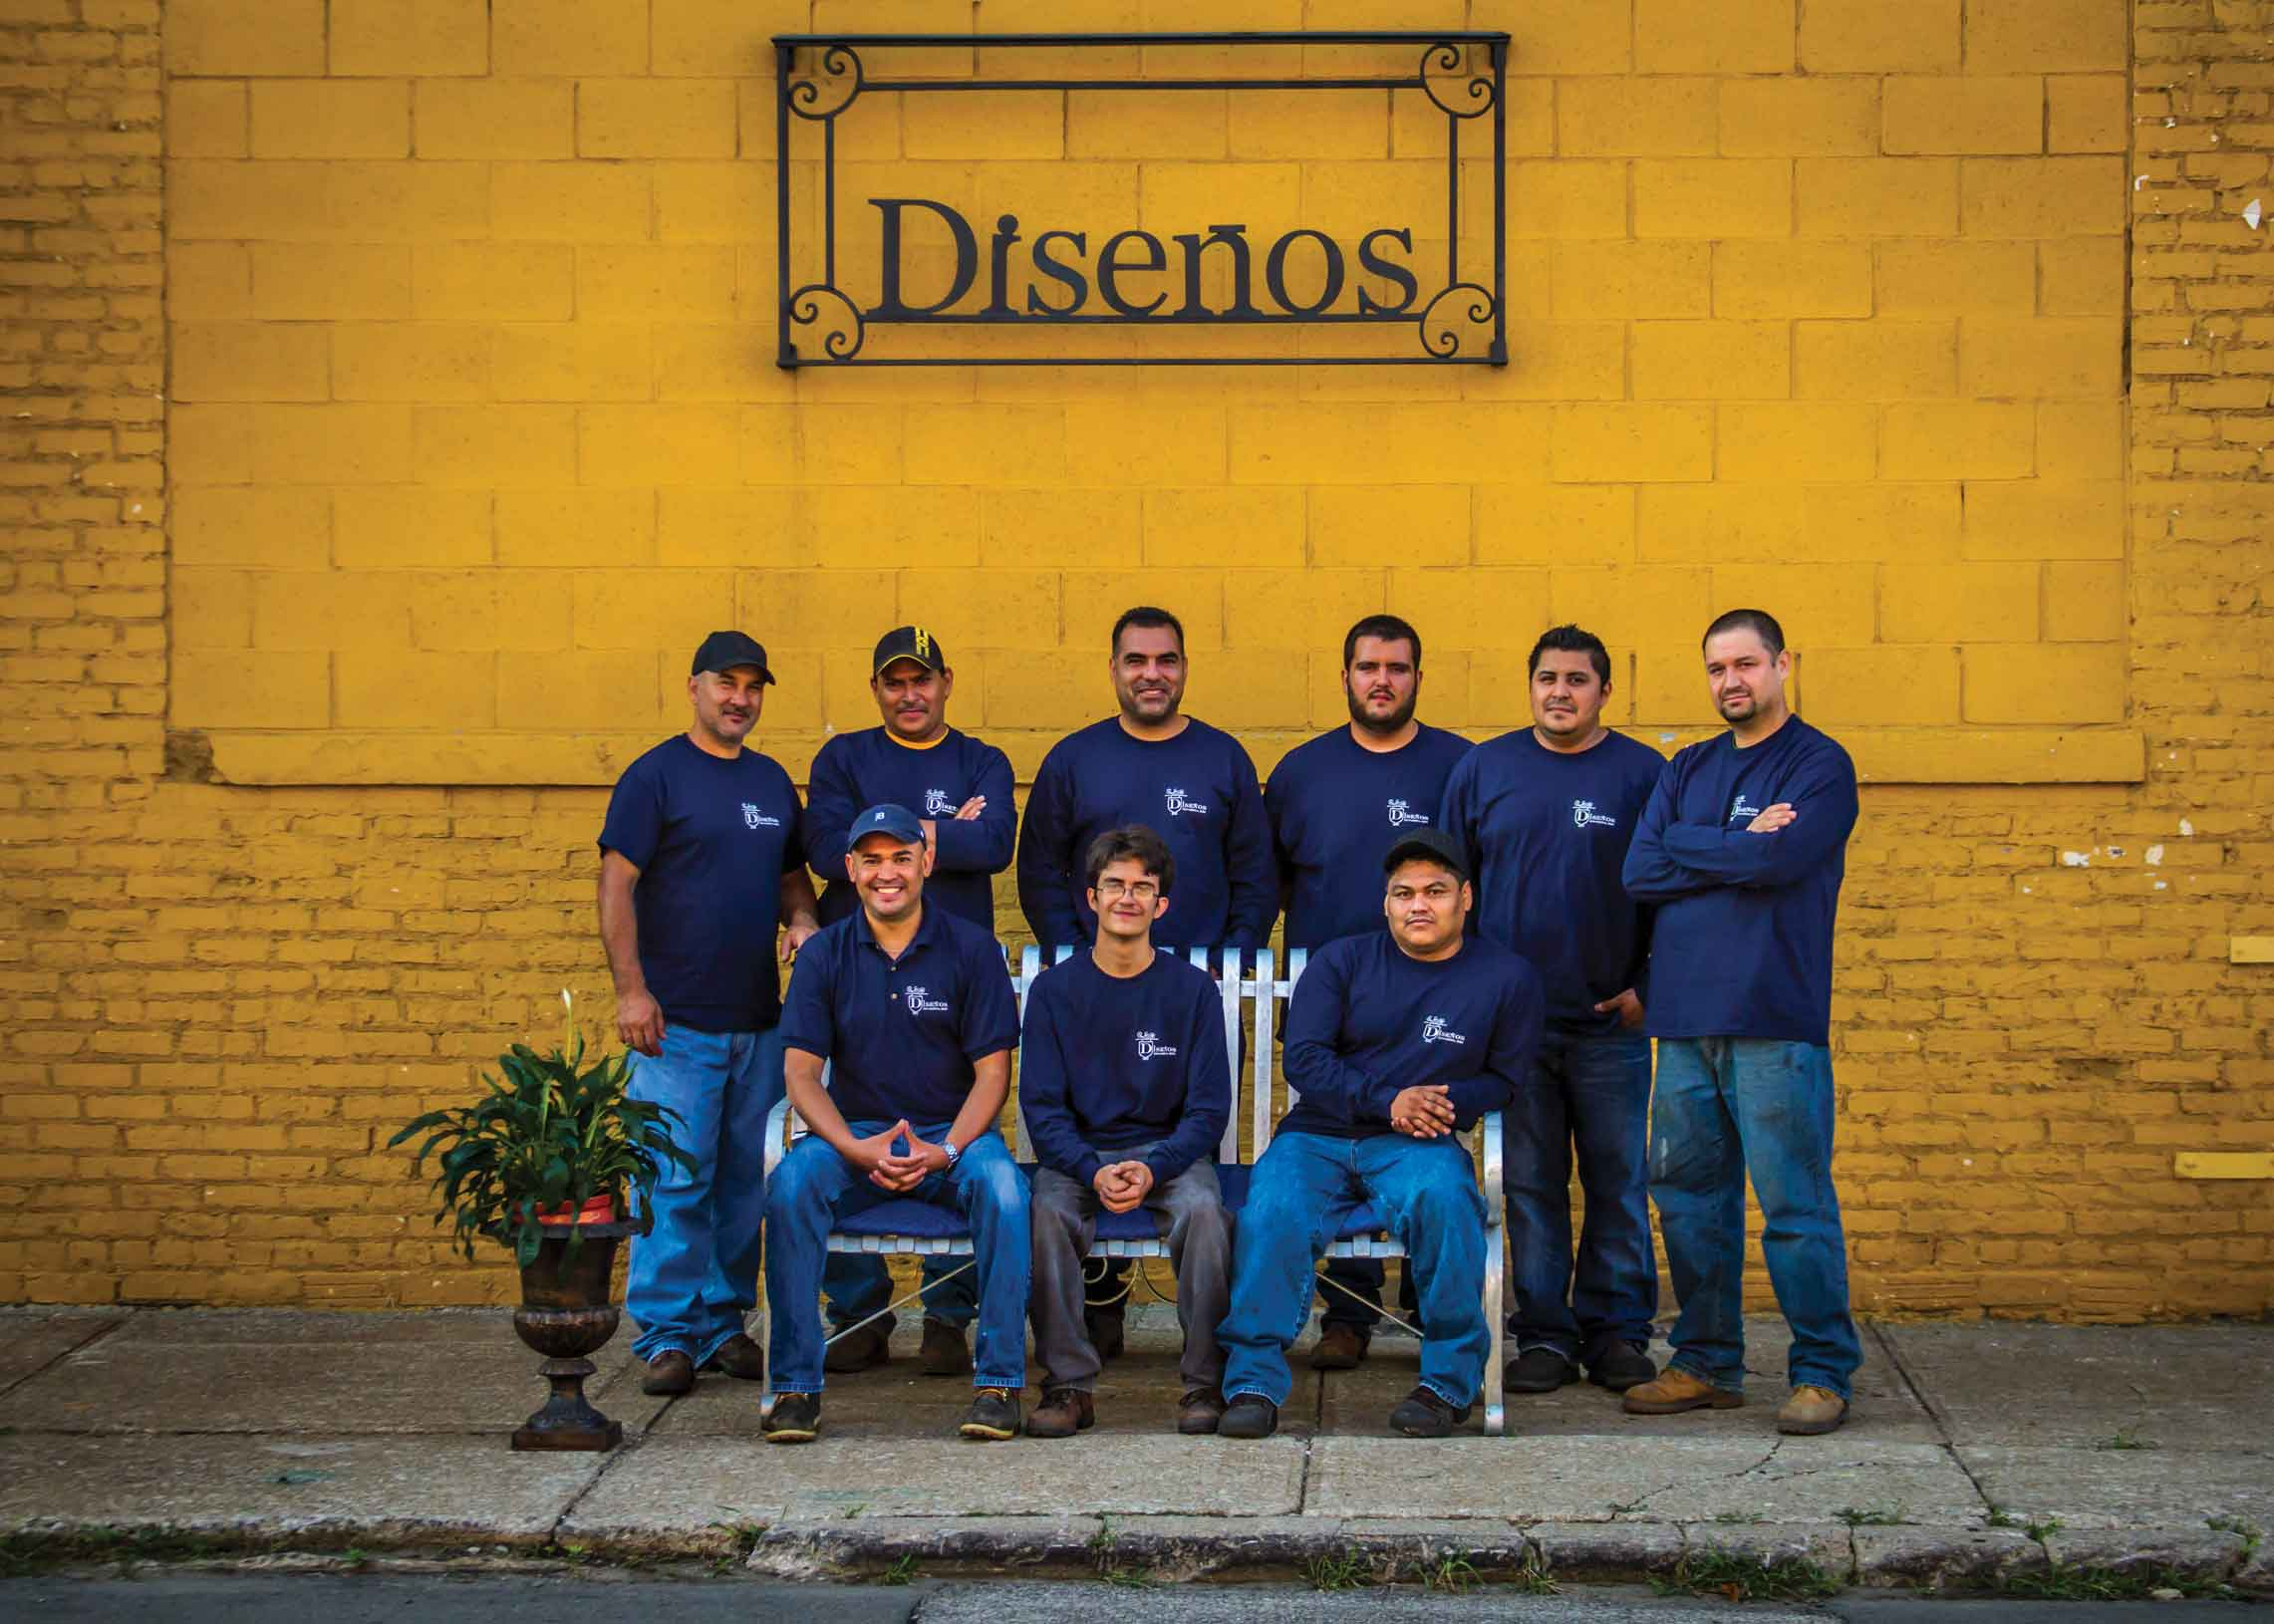 Diseños Ornamental Iron Detroit Staff Team